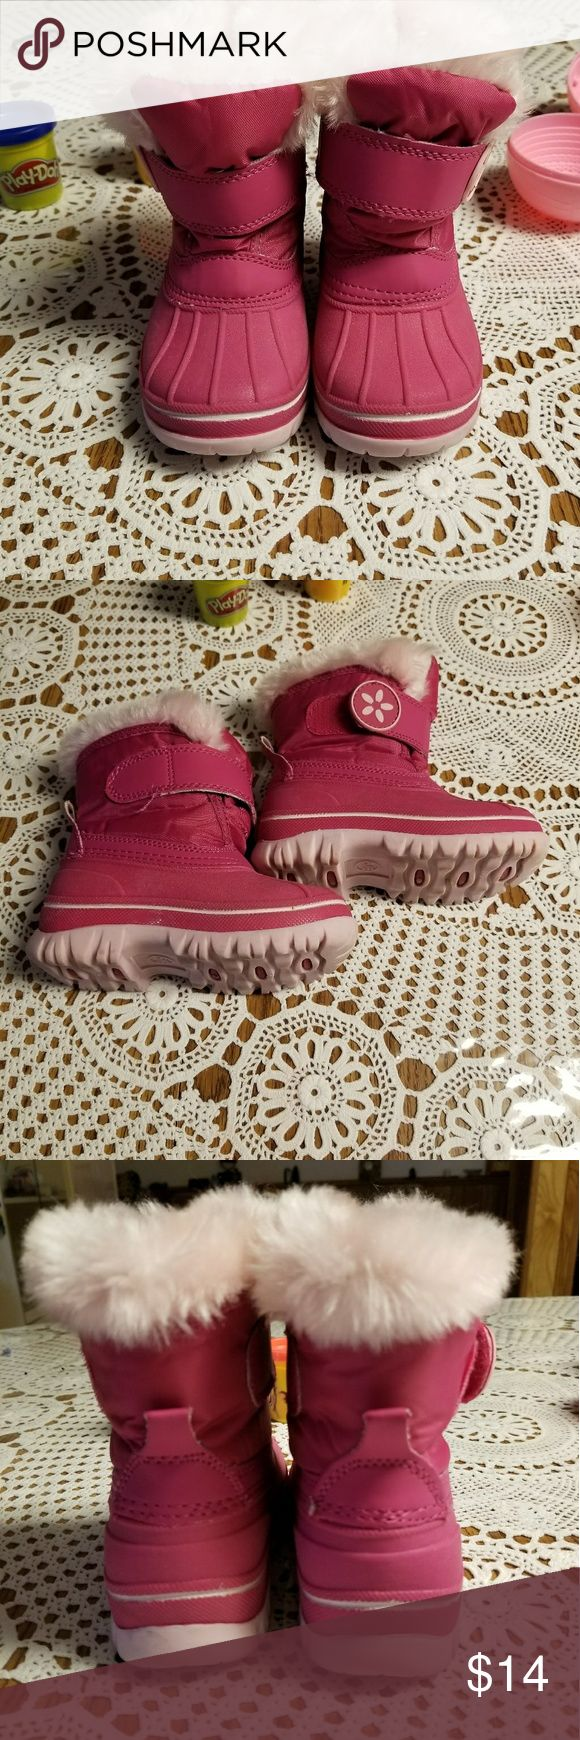 Kids snow boots Textured sole gives her traction.  Velcro closure.  Faux fur. So Soft inside.  She only got to use them once last year and this year they don't fit her.  You can even write on the inside who the shoe belongs to. Size 5/6. Small Shoes Rain & Snow Boots